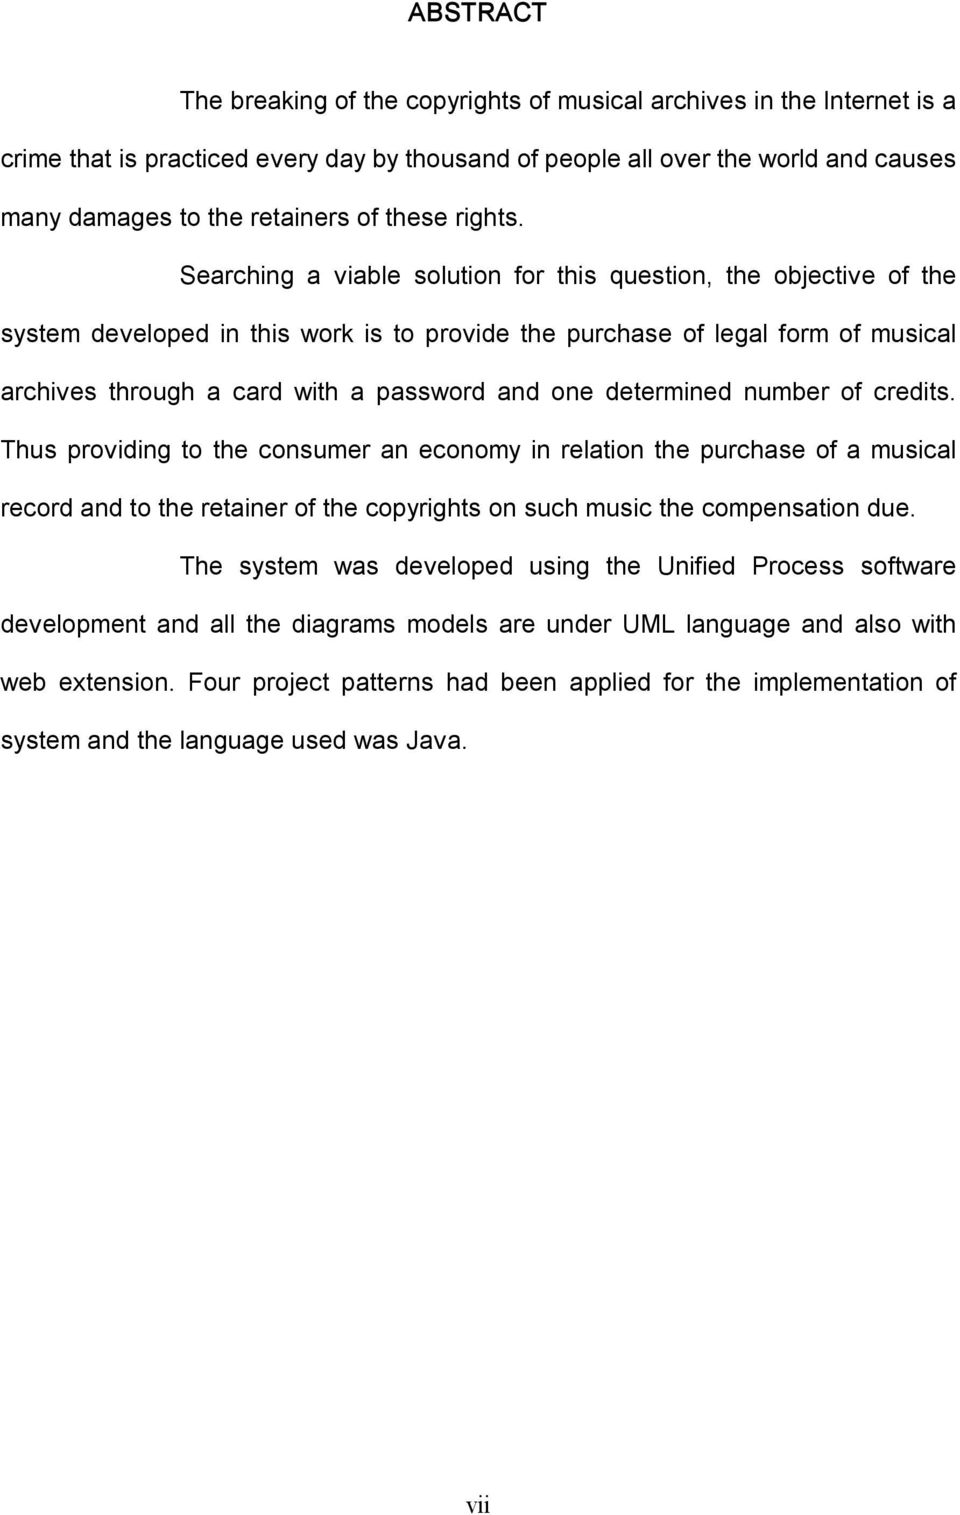 Searching a viable solution for this question, the objective of the system developed in this work is to provide the purchase of legal form of musical archives through a card with a password and one